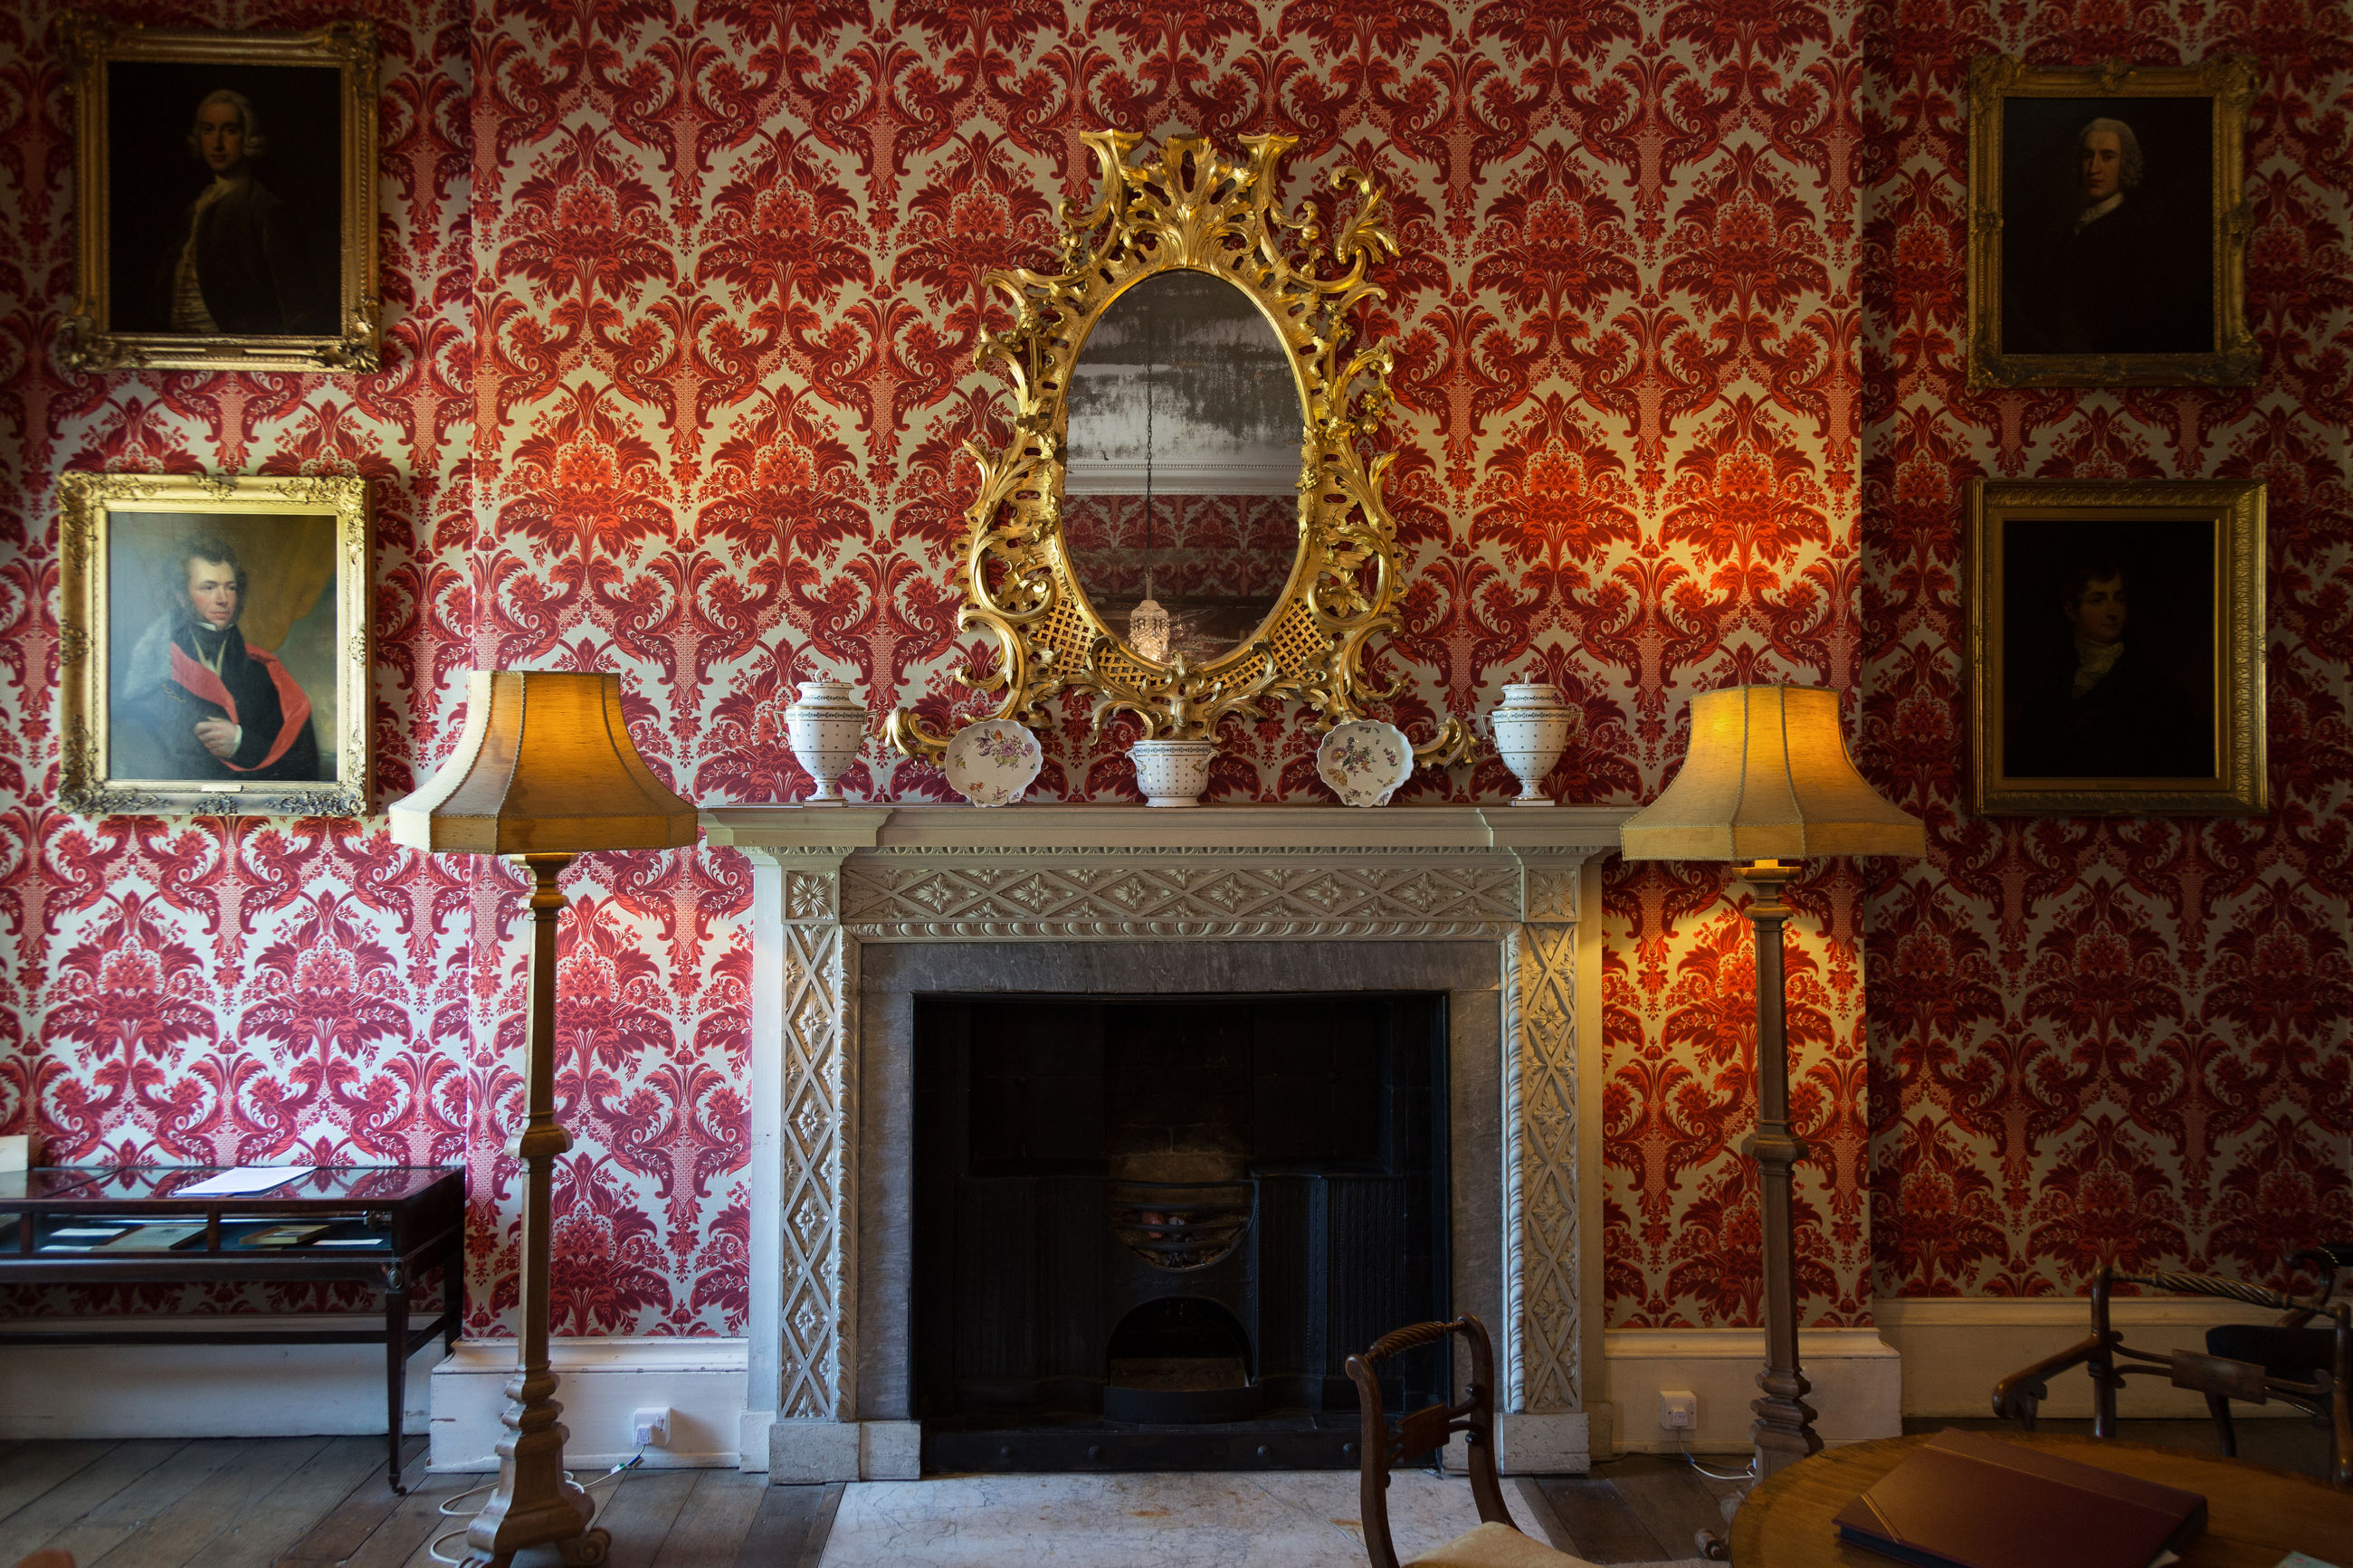 architecture, built structure, indoors, building, no people, pattern, fireplace, art and craft, design, creativity, window, wall - building feature, wall, illuminated, lighting equipment, the past, floral pattern, history, red, absence, mural, ornate